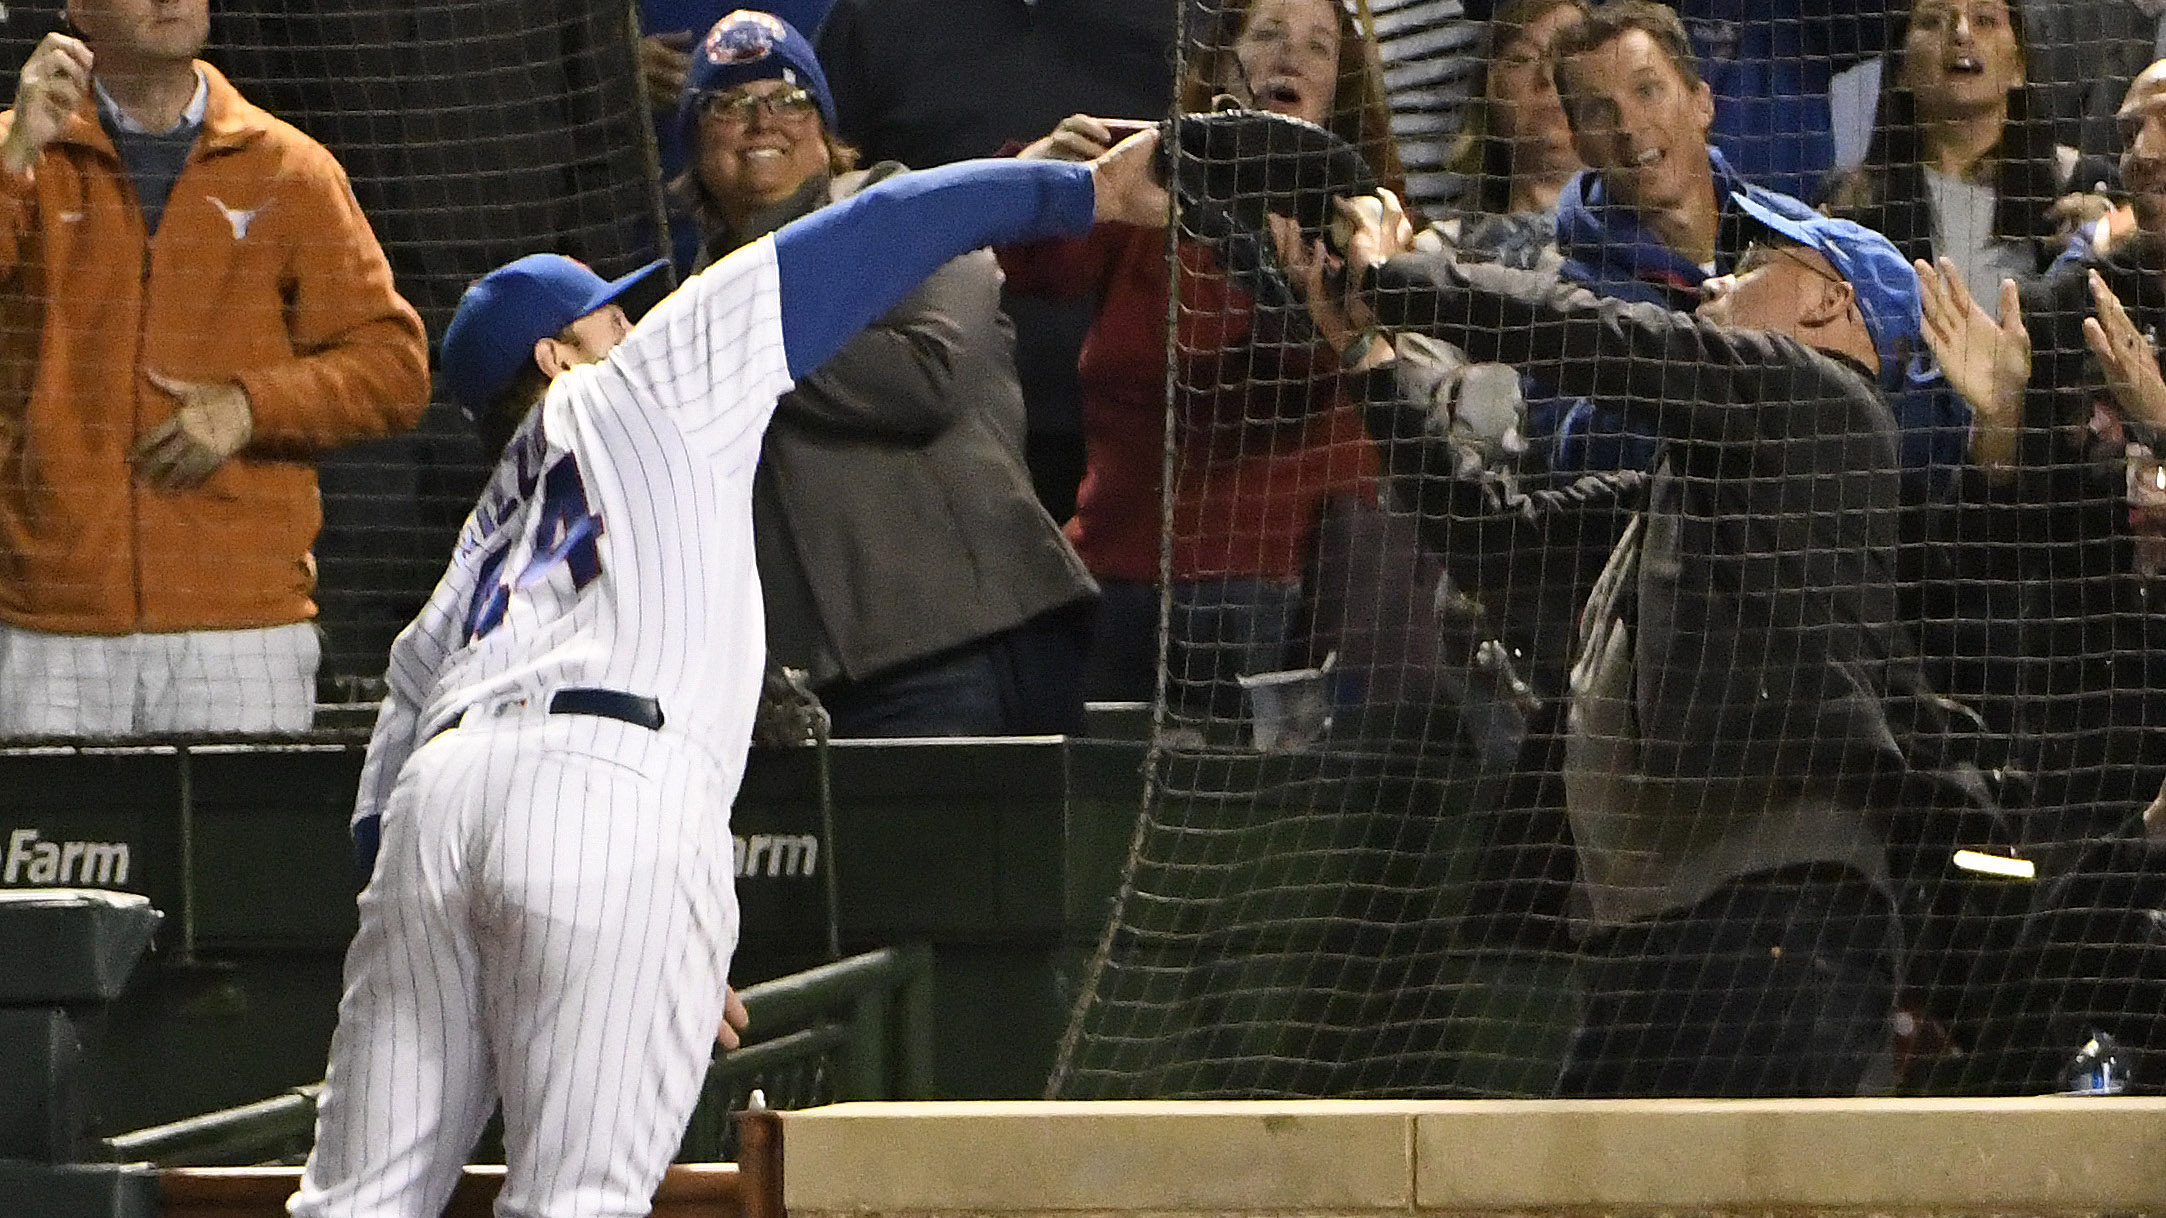 Cubs vs Pirates: Fan interferes with Anthony Rizzo (video)